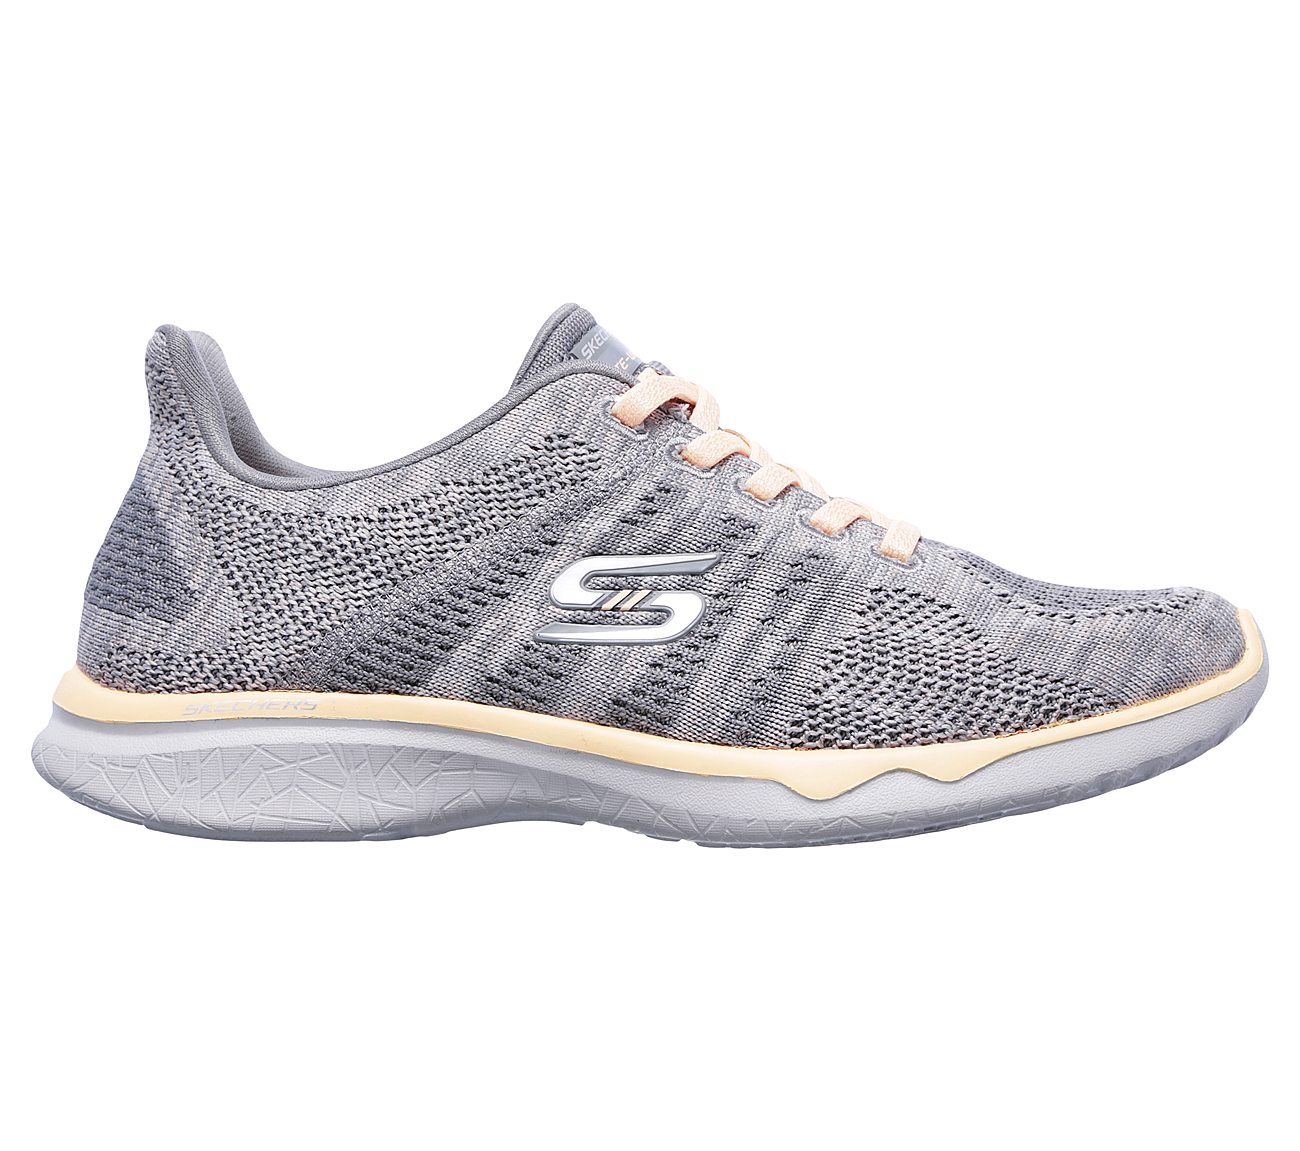 Skechers Studio Burst 23388-GYOR